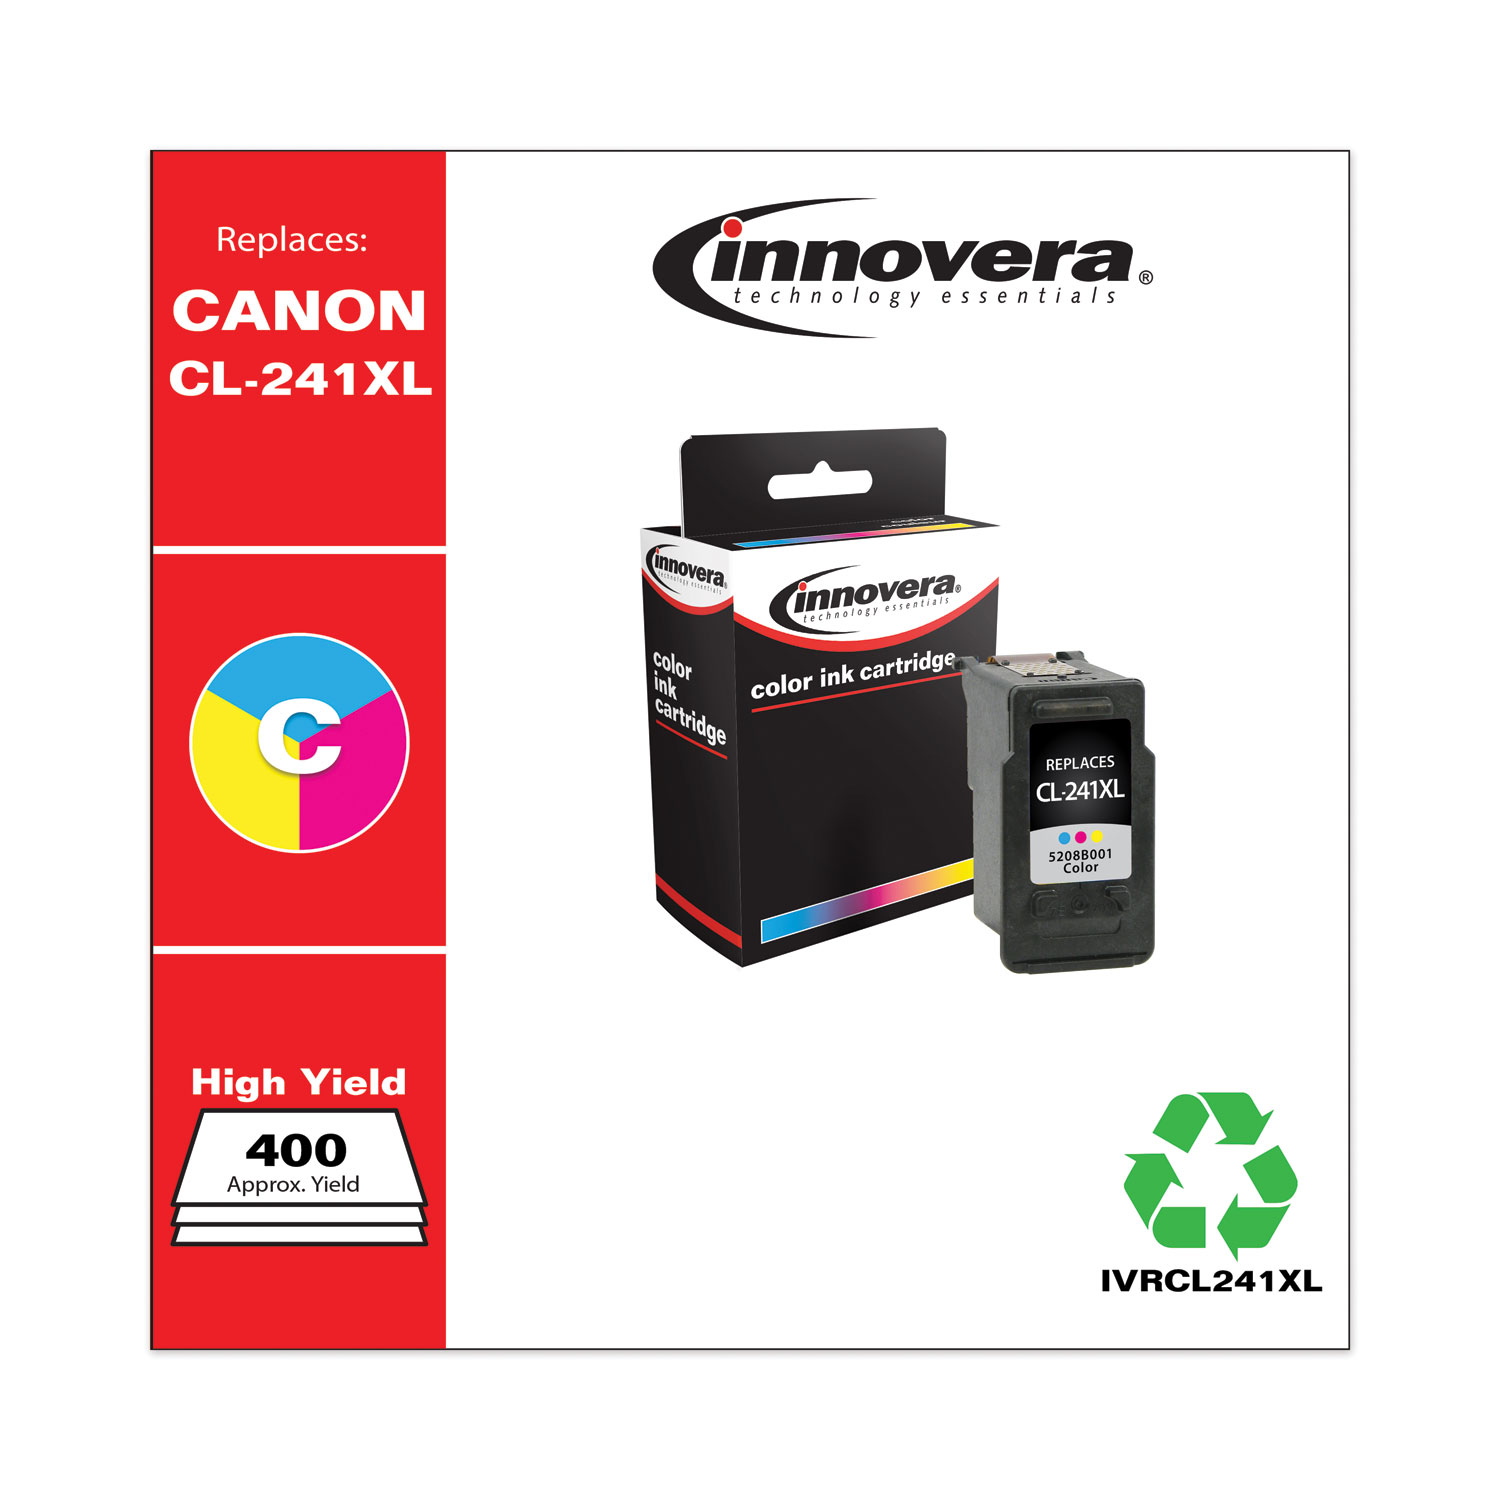 Remanufactured Tri-Color High-Yield Ink, Replacement for Canon CL-241XL (5208B001), 400 Page-Yield IVRCL241XL